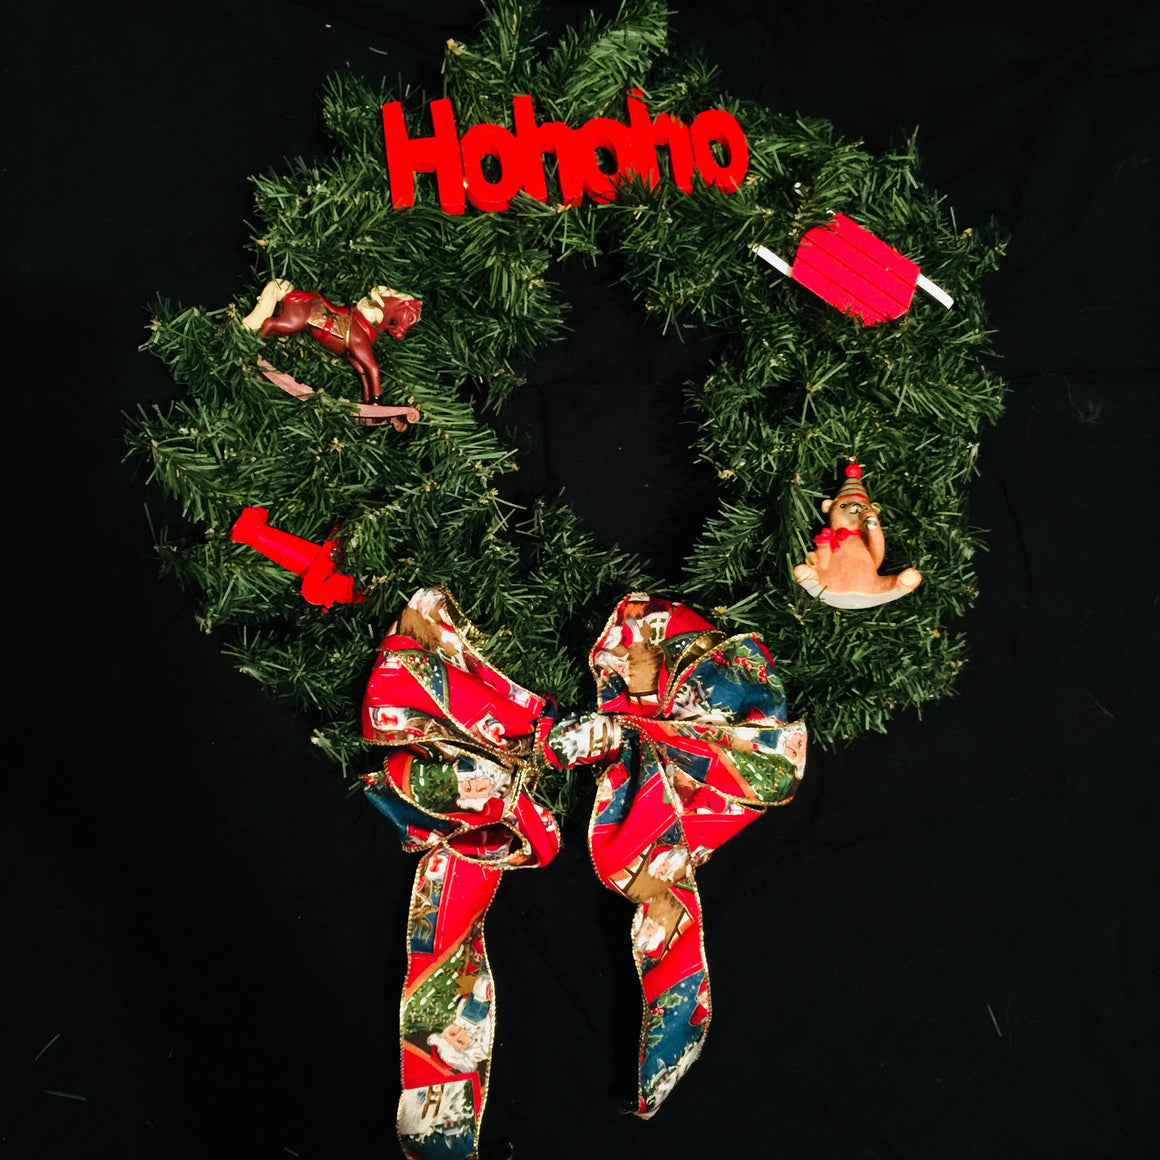 "Christmas Wreath - 17"" Toy Theme HoHoHo"